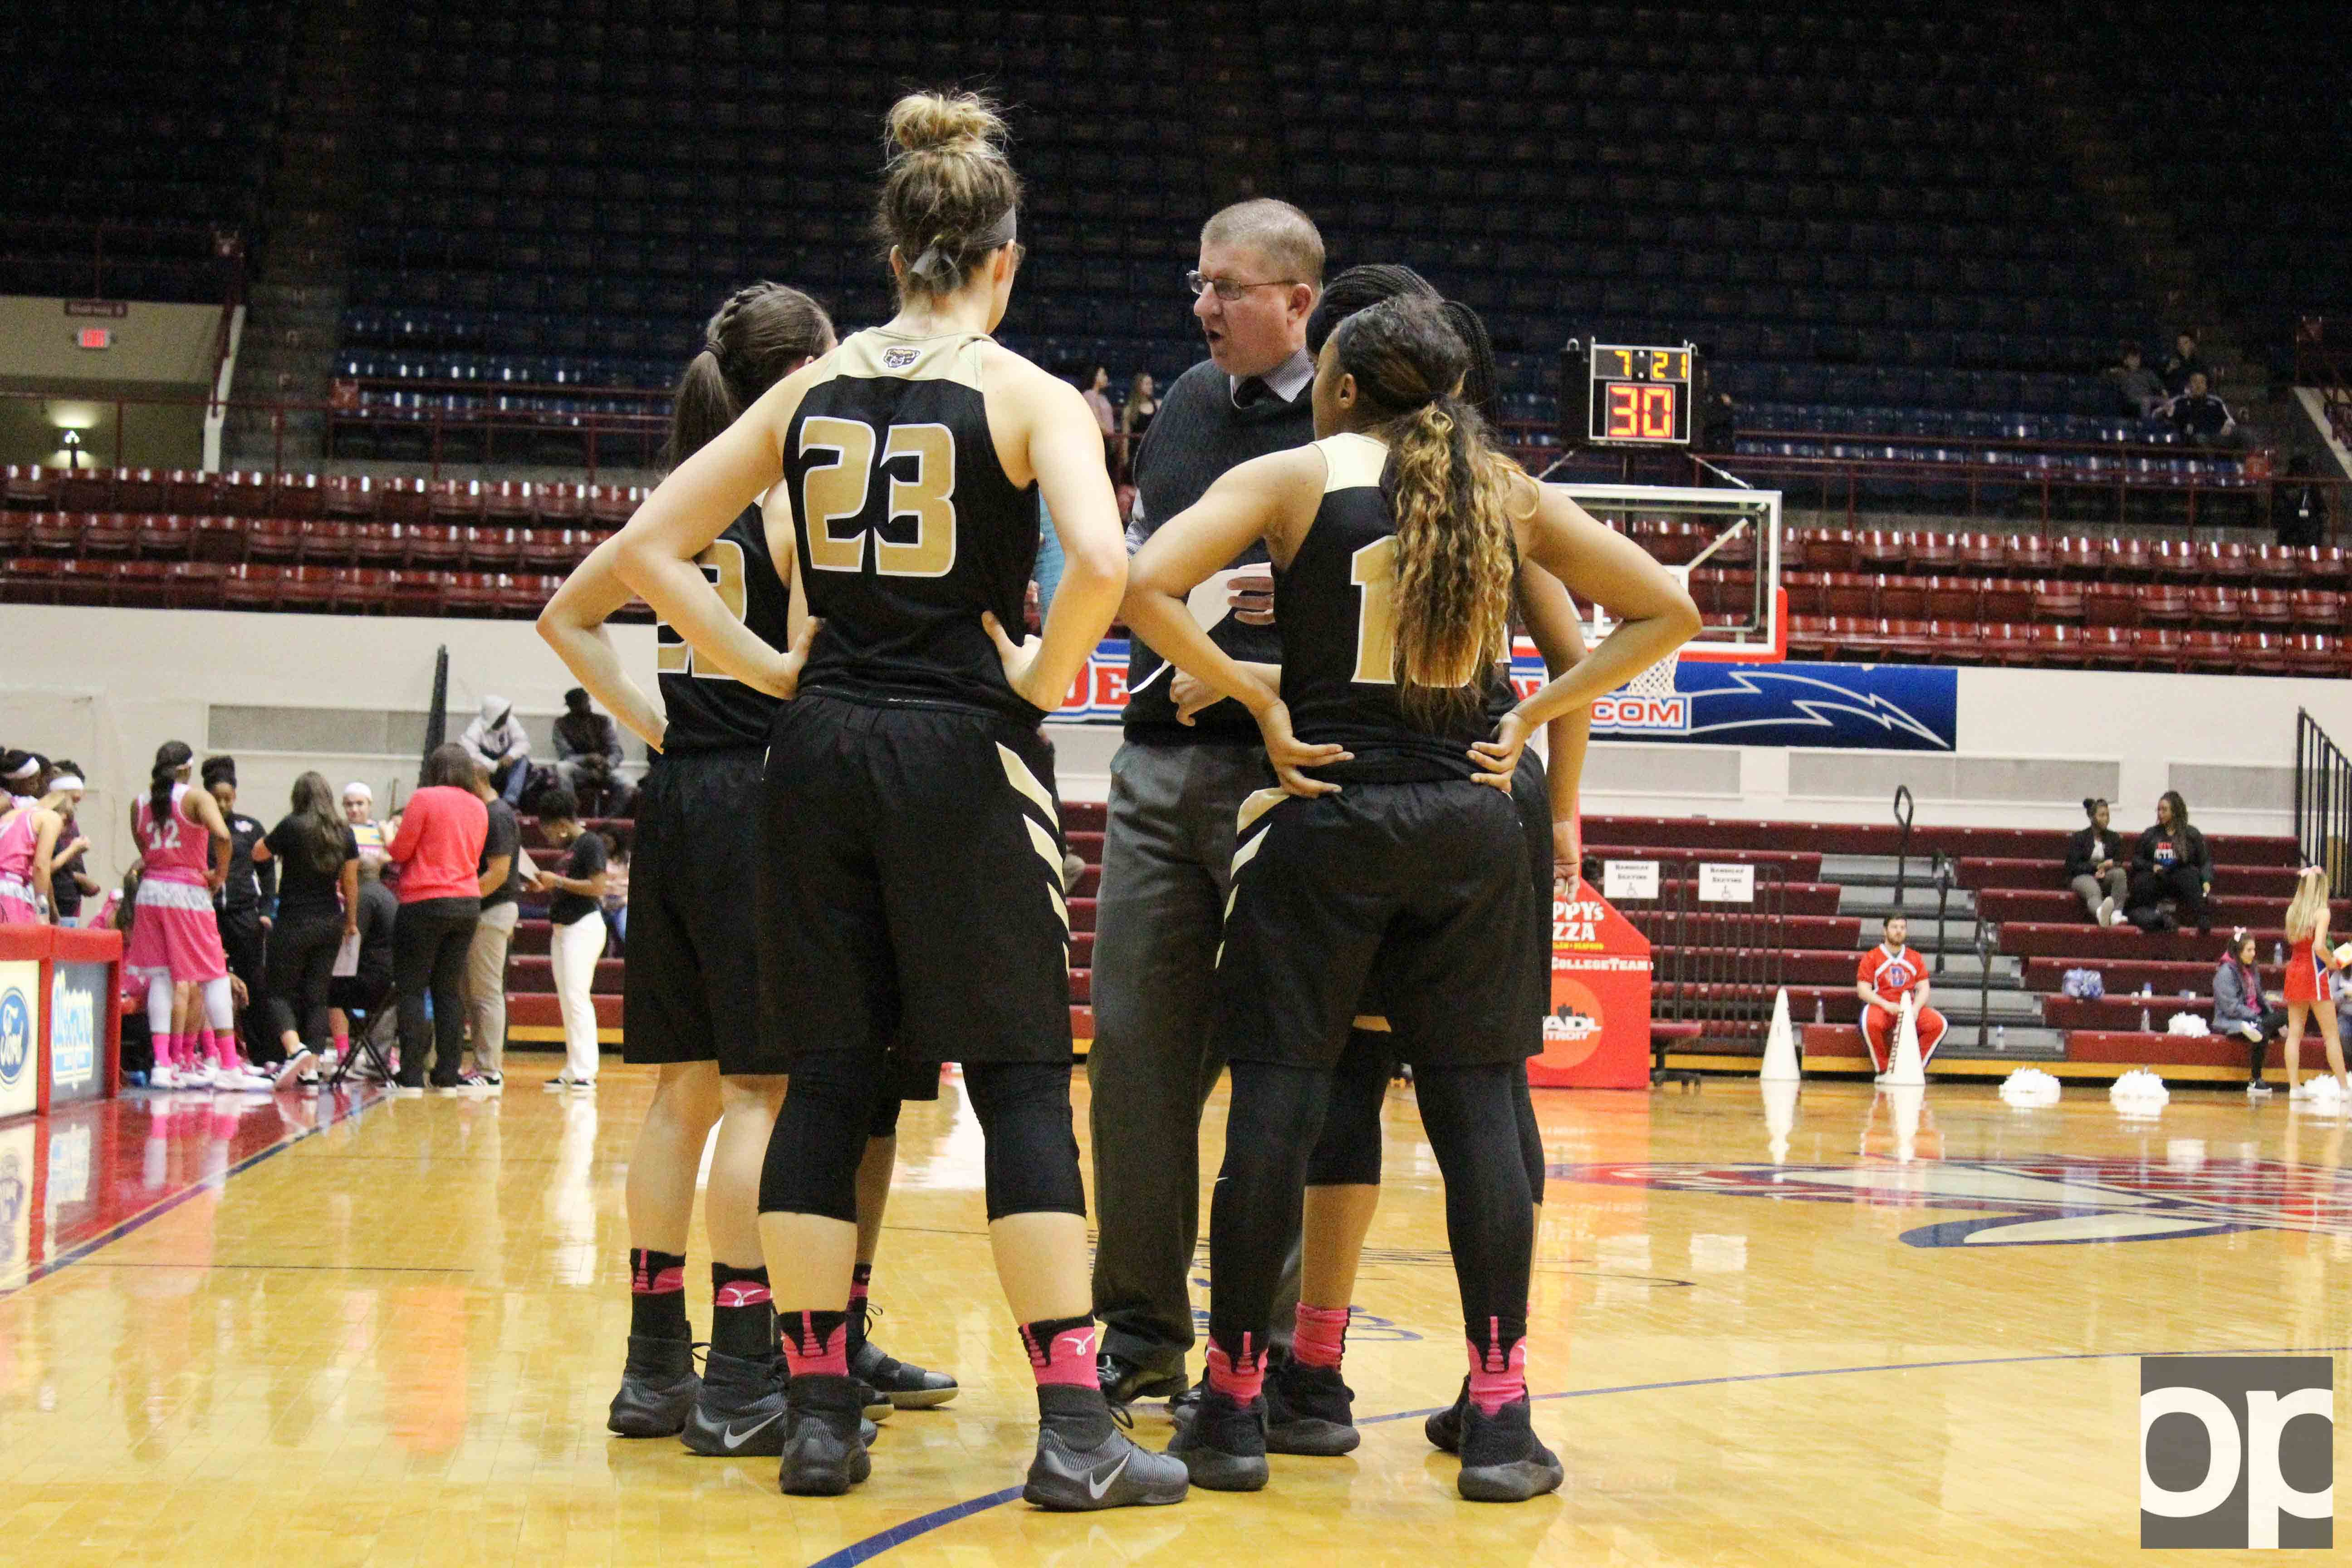 The Oakland women's basketball team traveled to Calihan Hall for a rivalry game against University of Detroit Mercy and fell 71-61 on Saturday, Jan. 11.